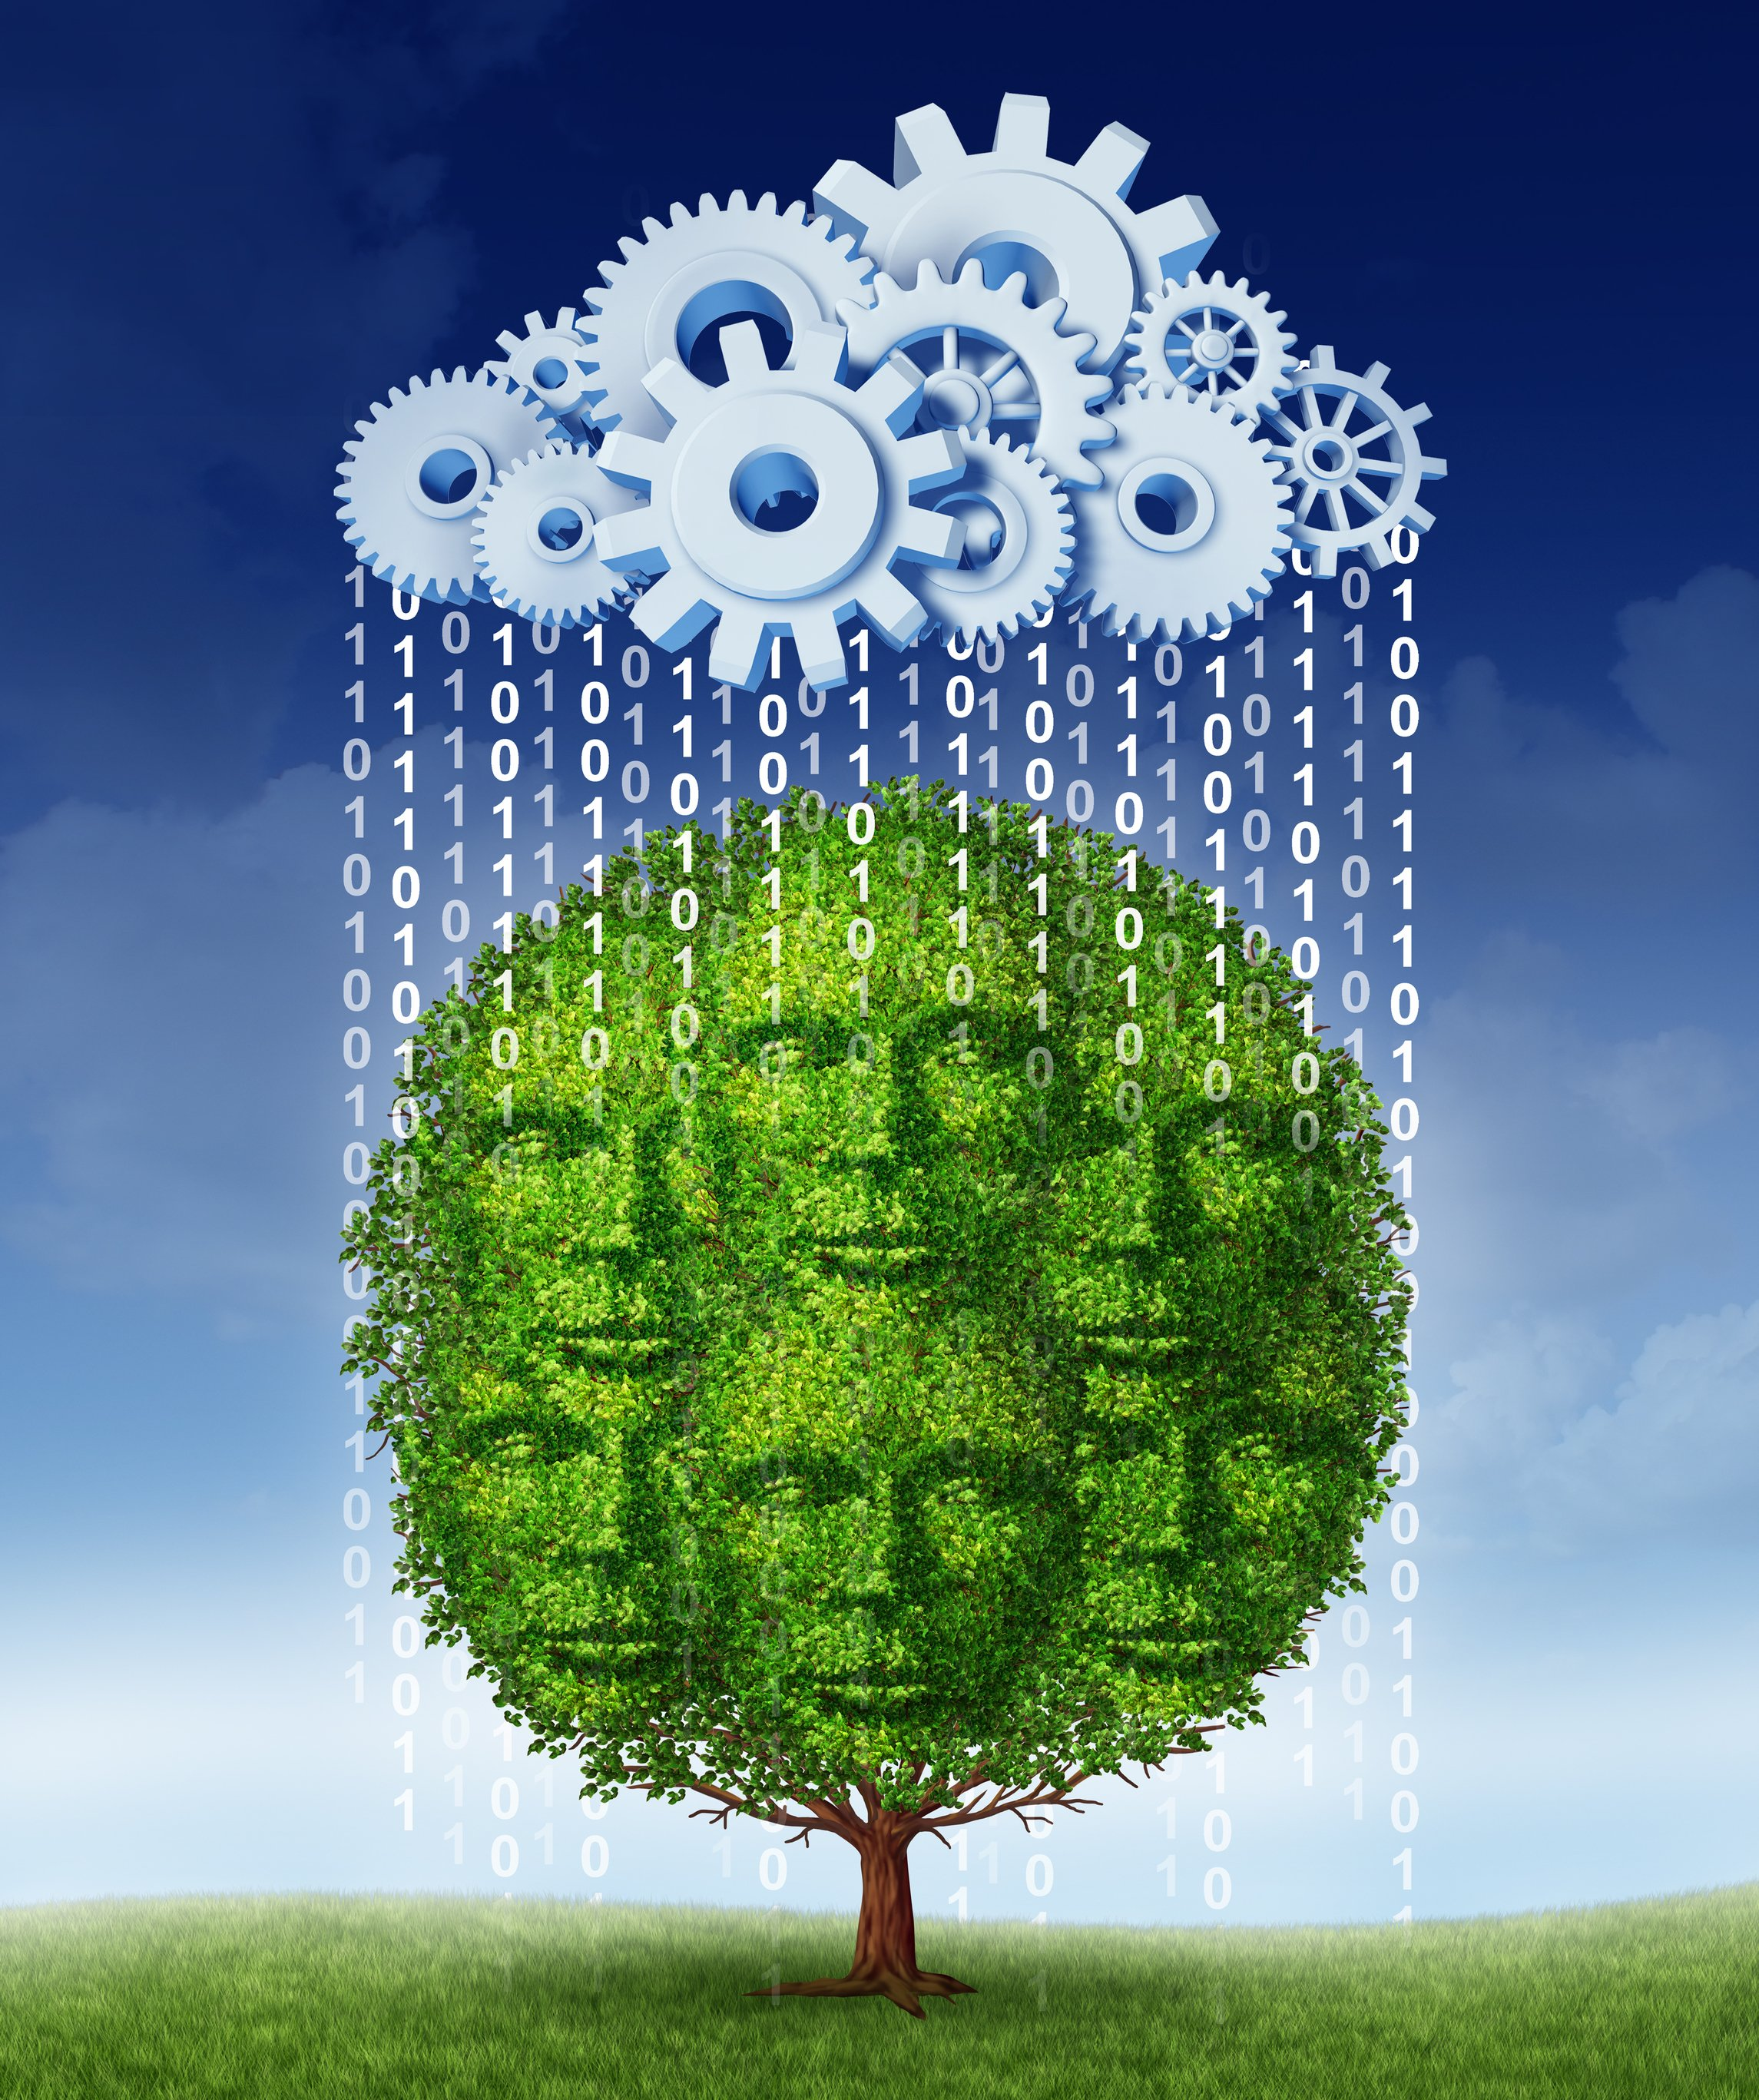 Social media growth technology concept with a tree shaped as a group of human heads growing helped by a virtual server cloud made of gears and cogs raining down digital code as a metaphor for internet marketing strategies.